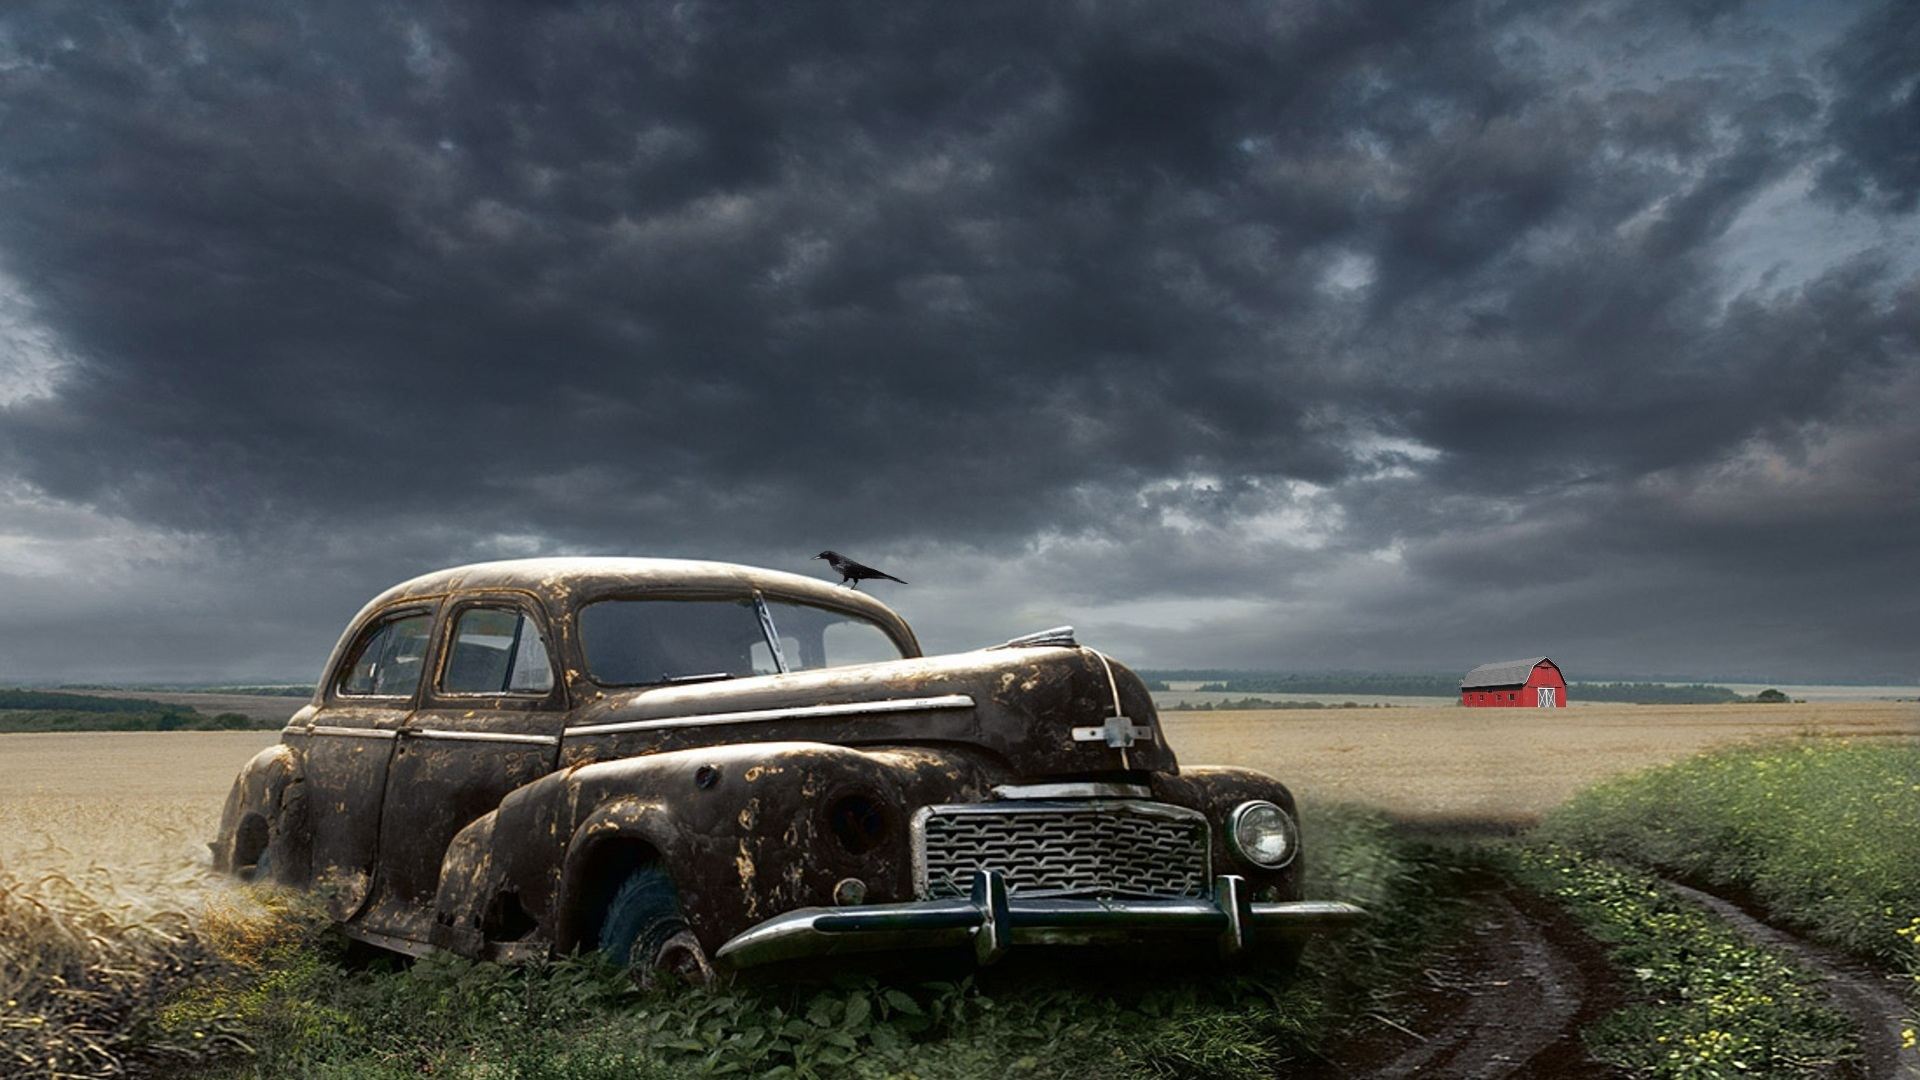 Abandoned Rusty Classic Car in a Field